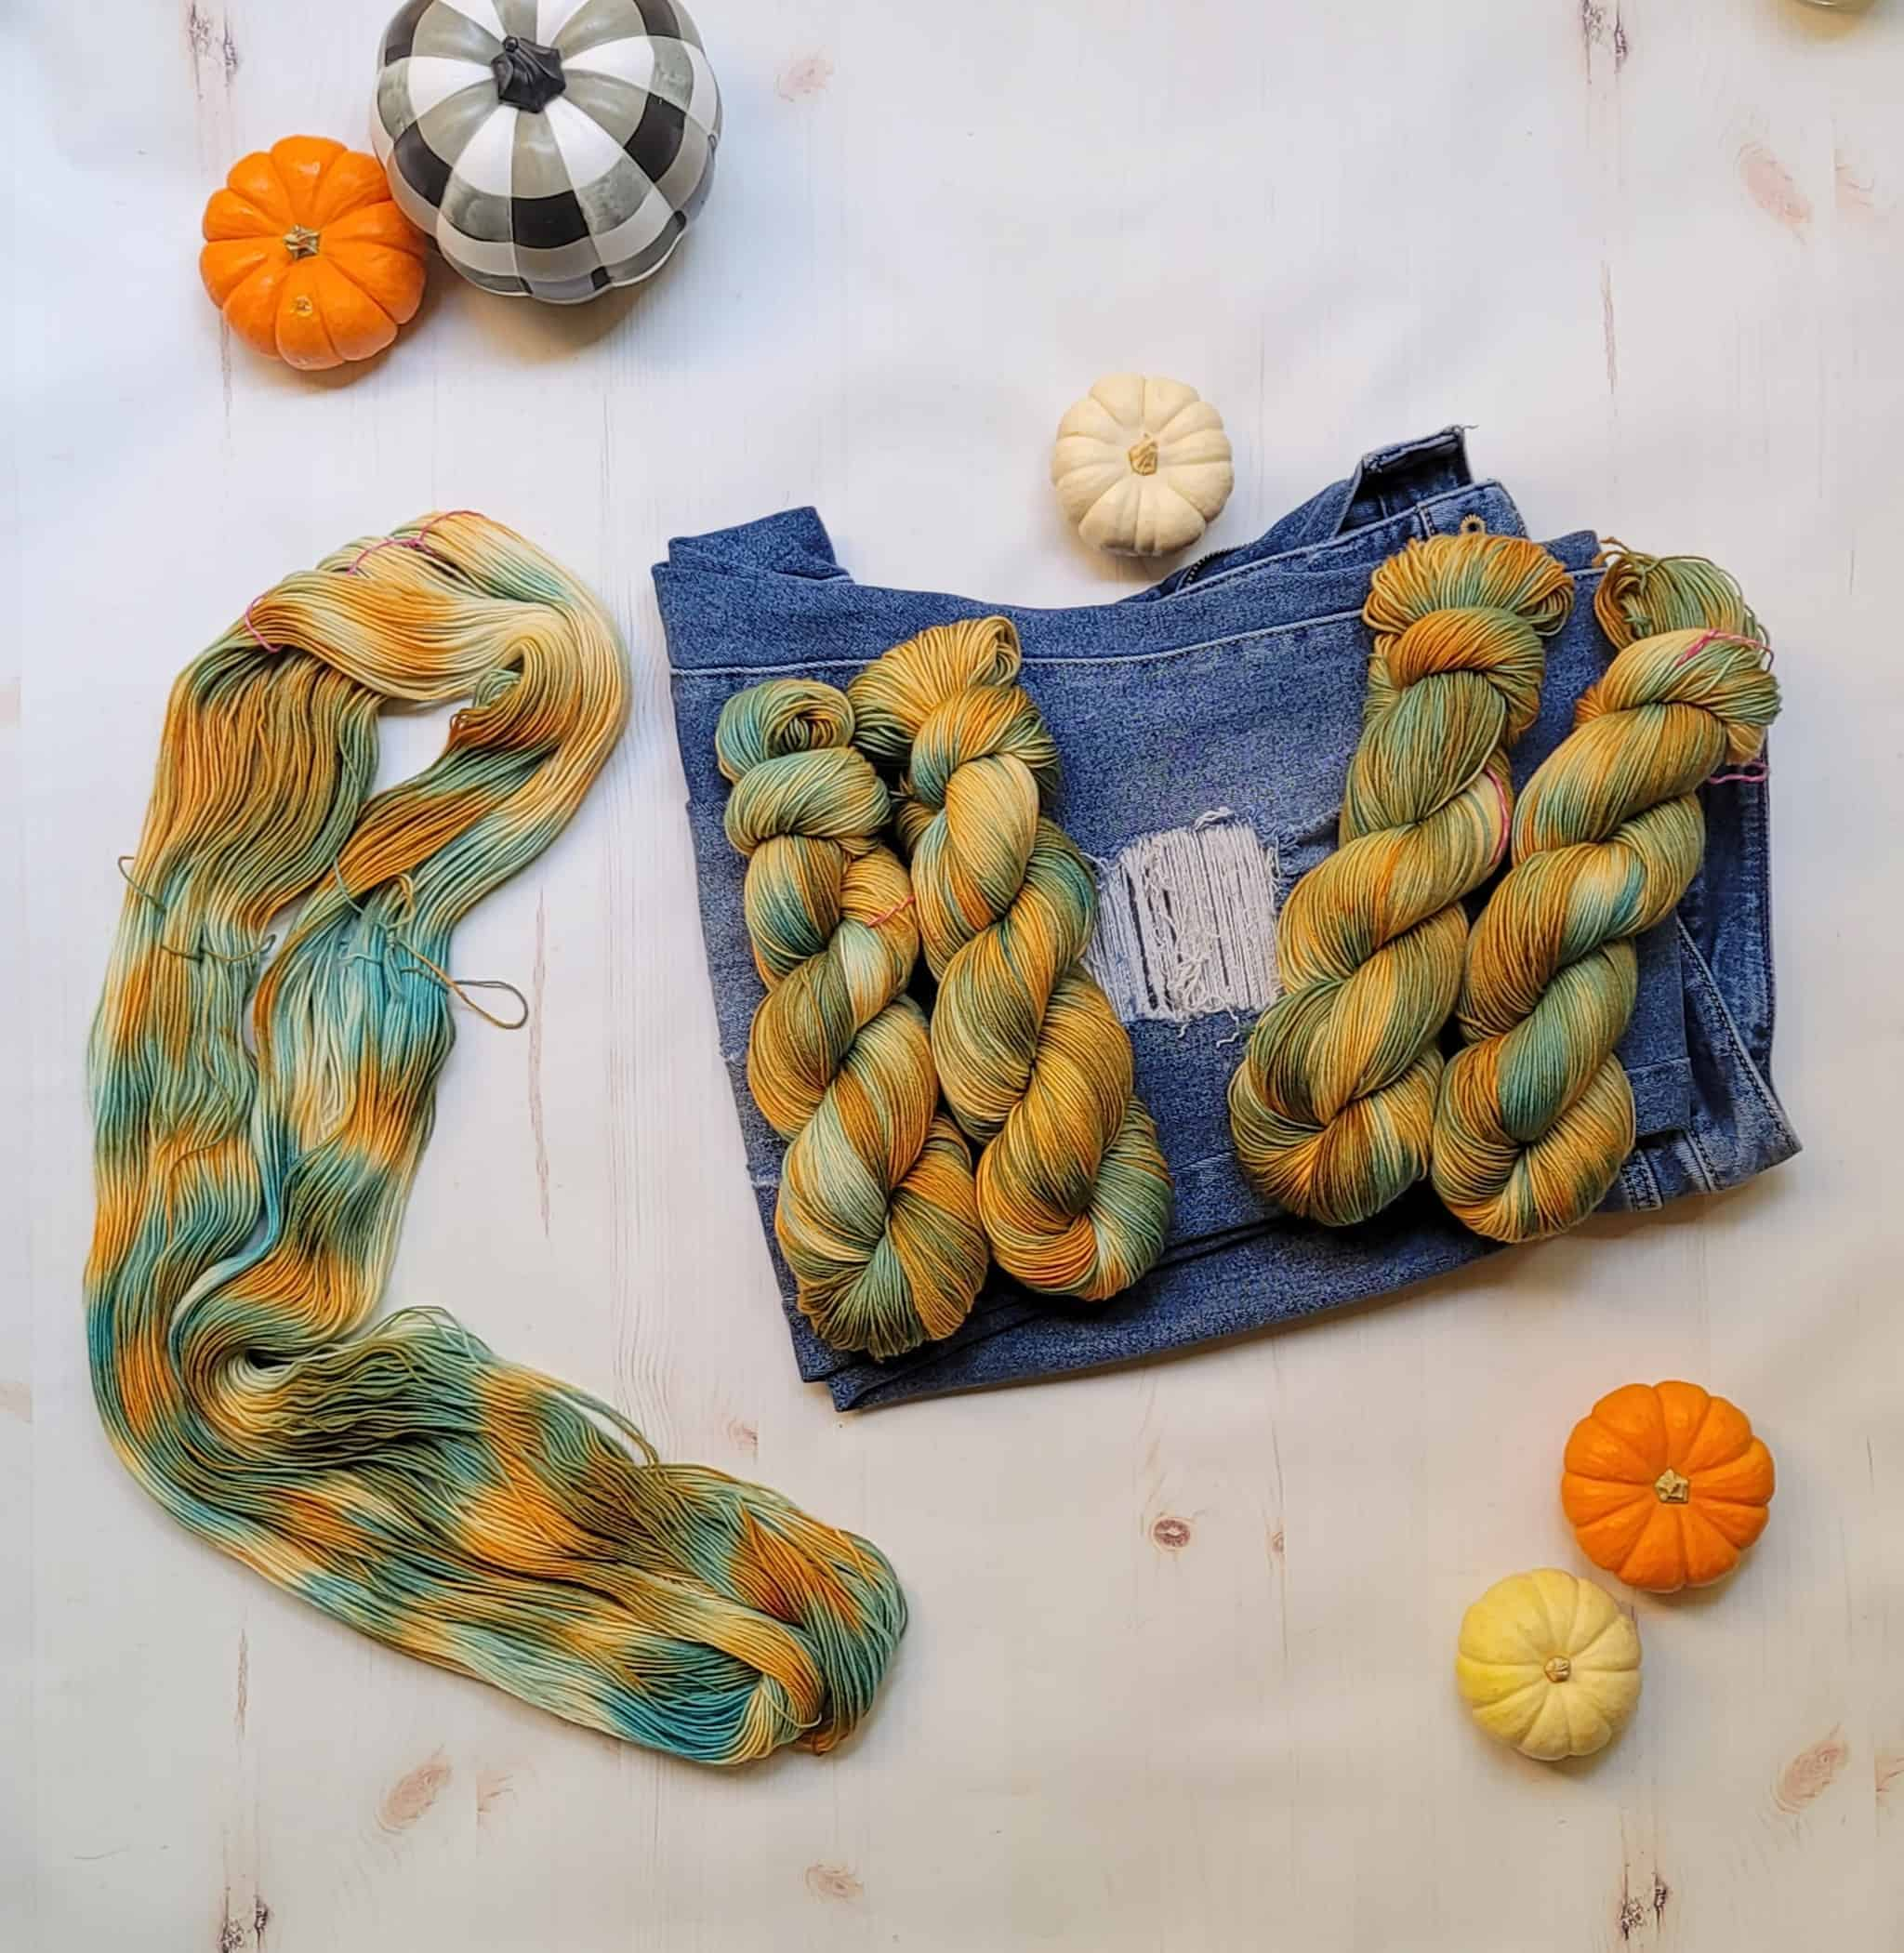 Gold and teal yarn.